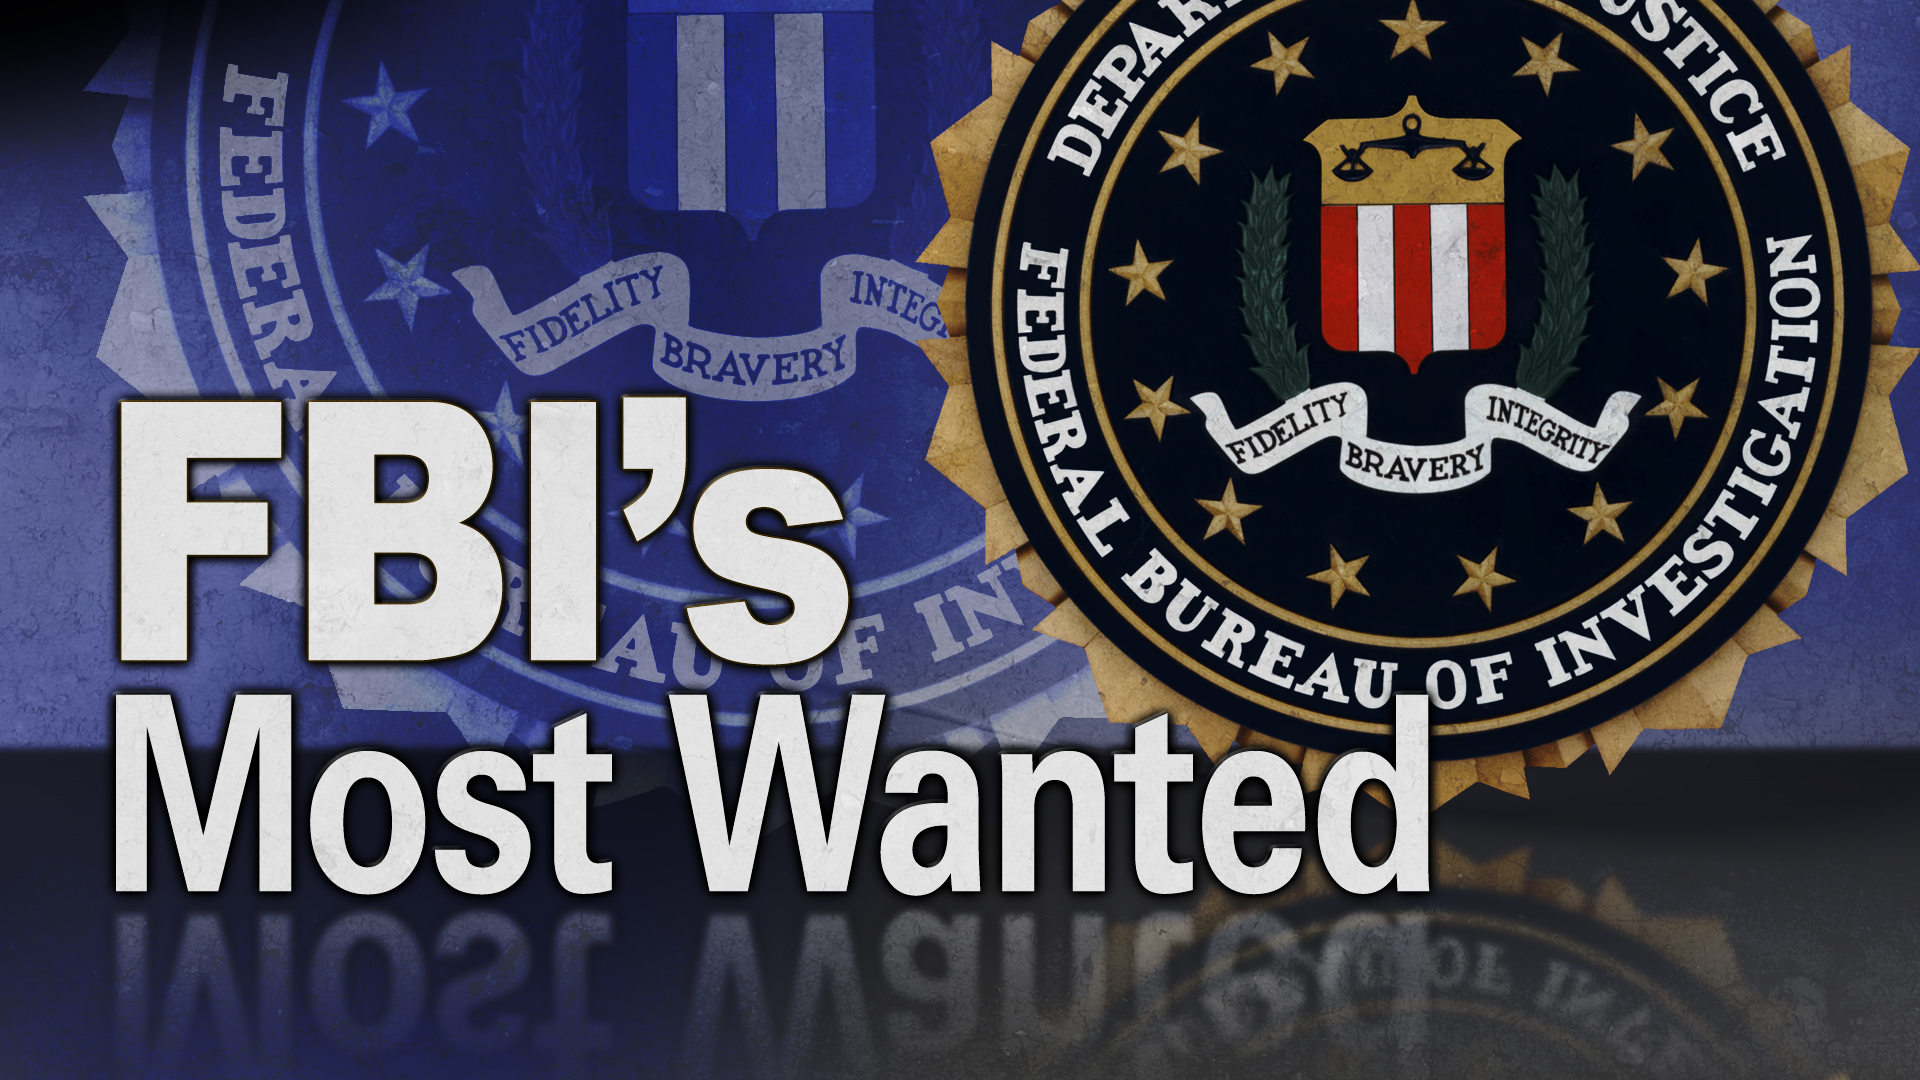 FBI MOST WANTED LIST : most common earthquakes in arizona